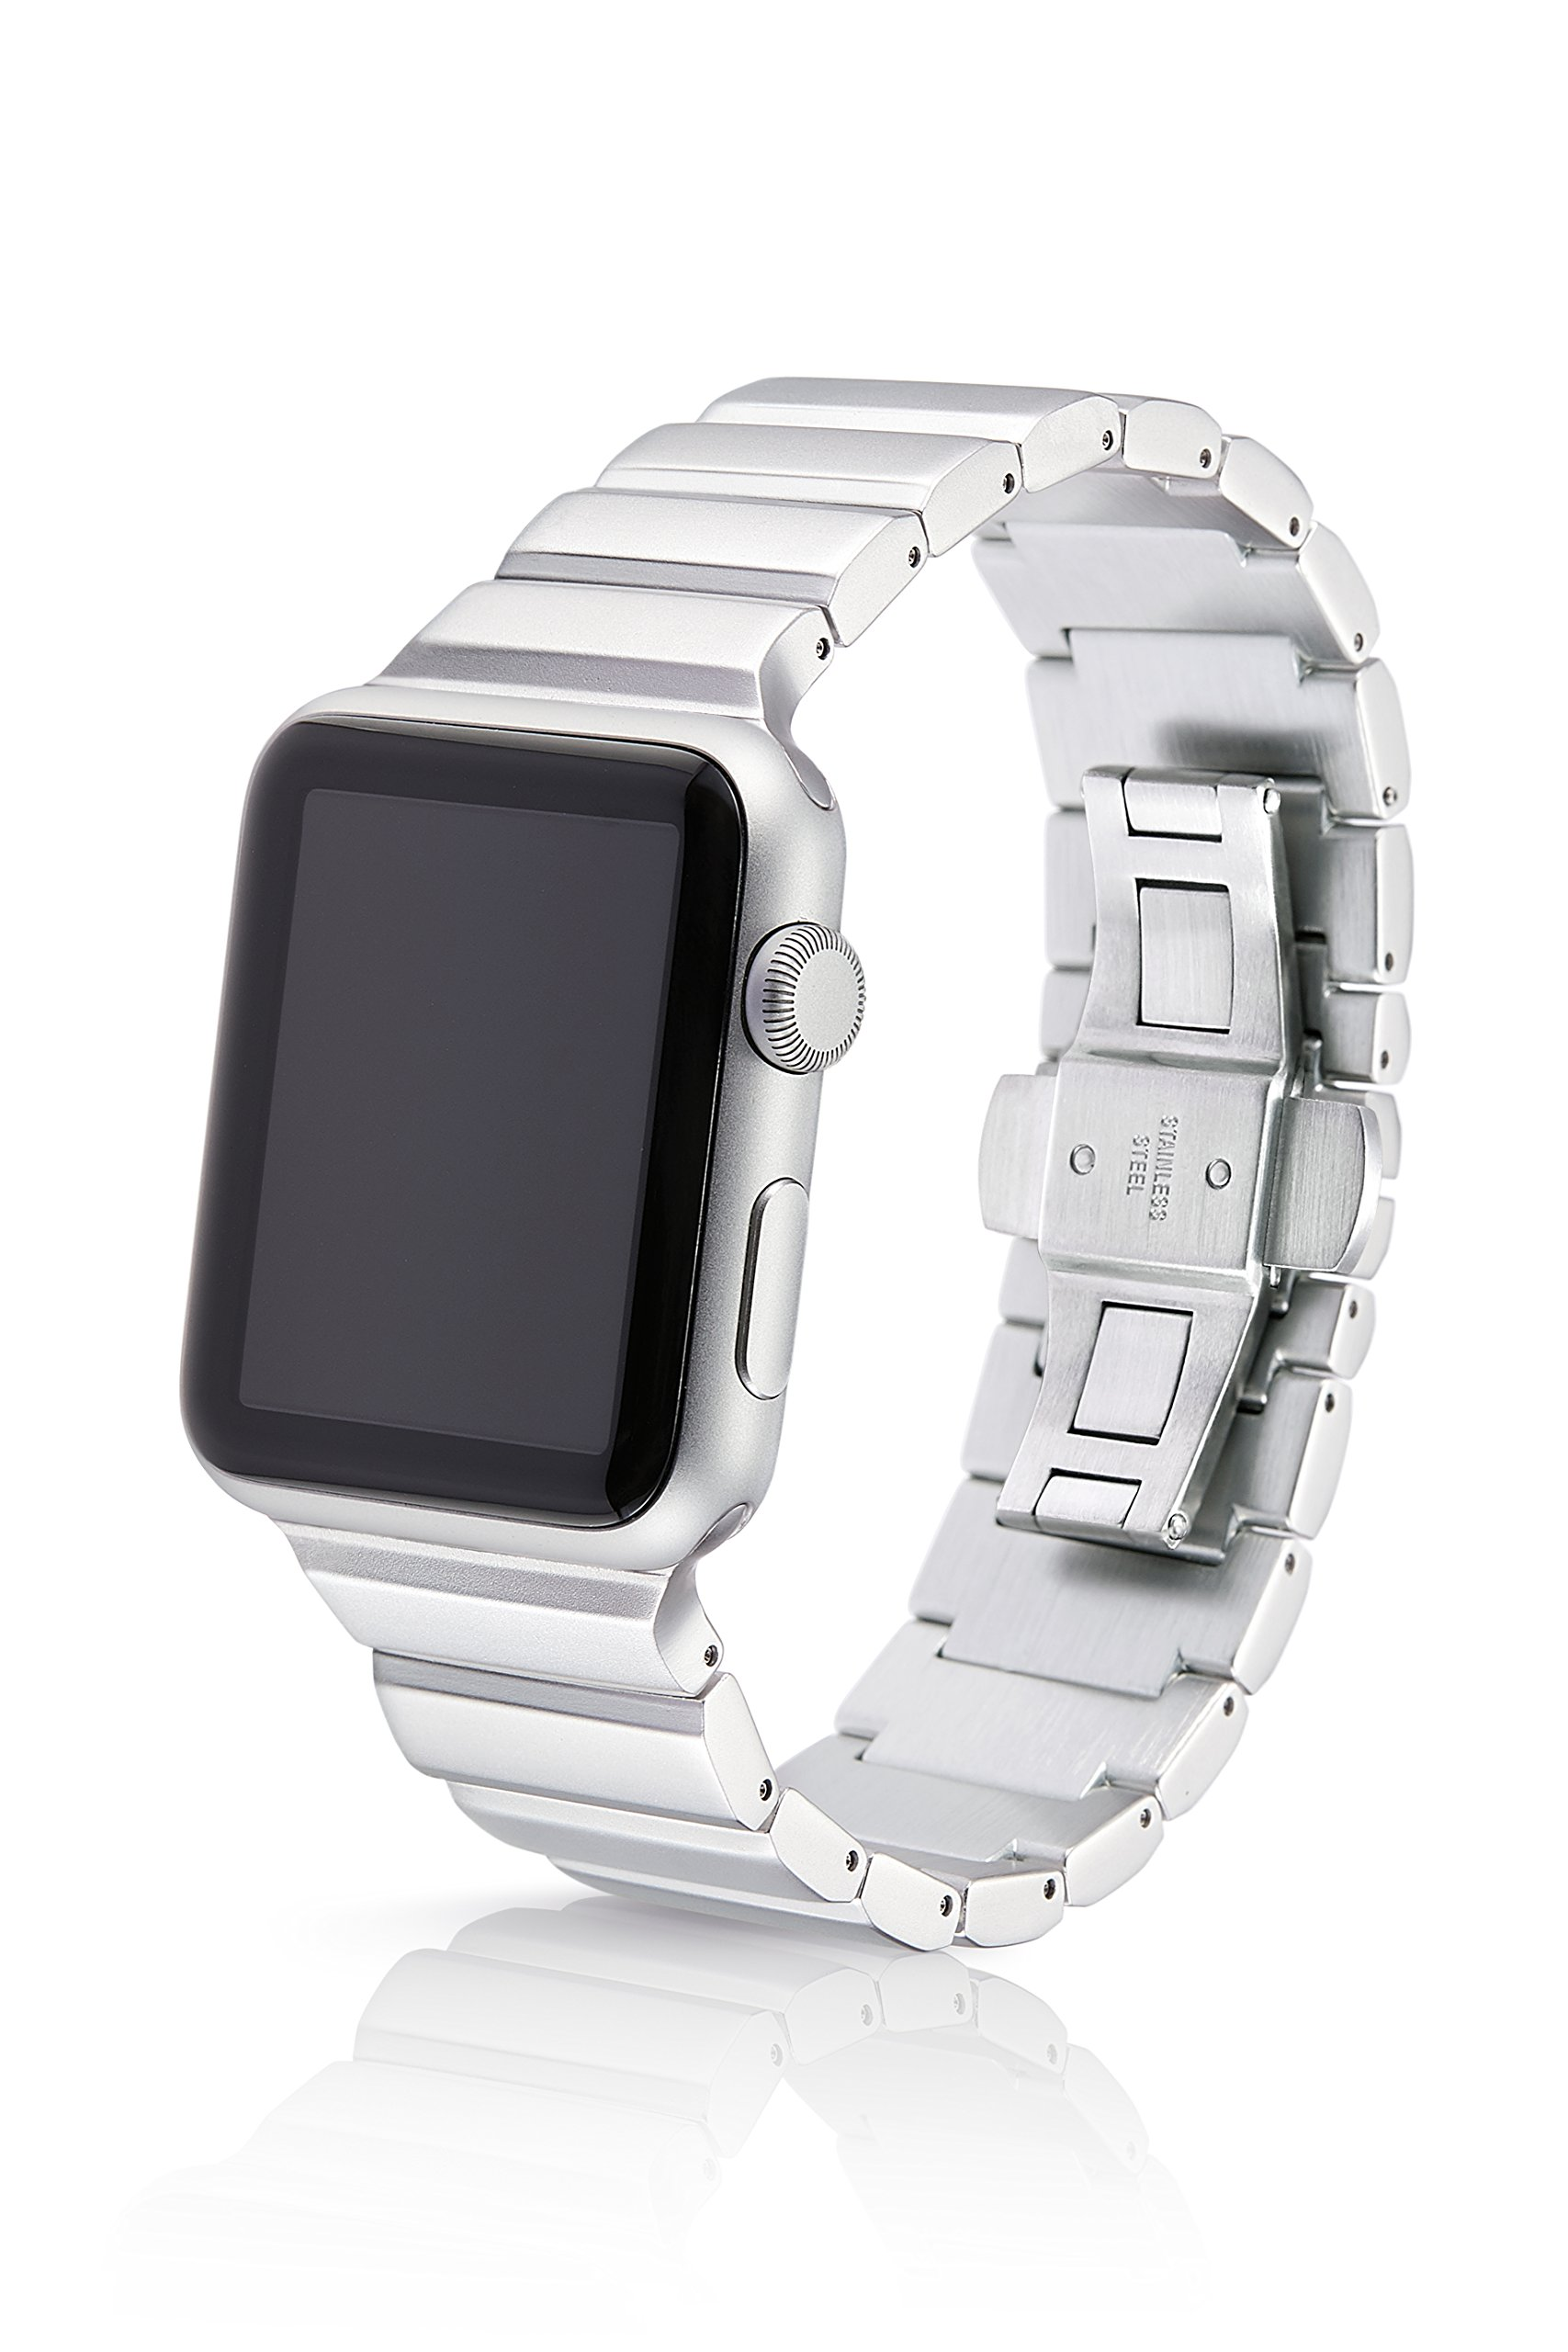 38/40mm JUUK Silver Ligero Premium Watch Band Made for The Apple Watch, Using Aircraft Grade, Hard Anodized 6000 Series Aluminum with a Solid Stainless Steel Butterfly deployant Buckle (Matte)